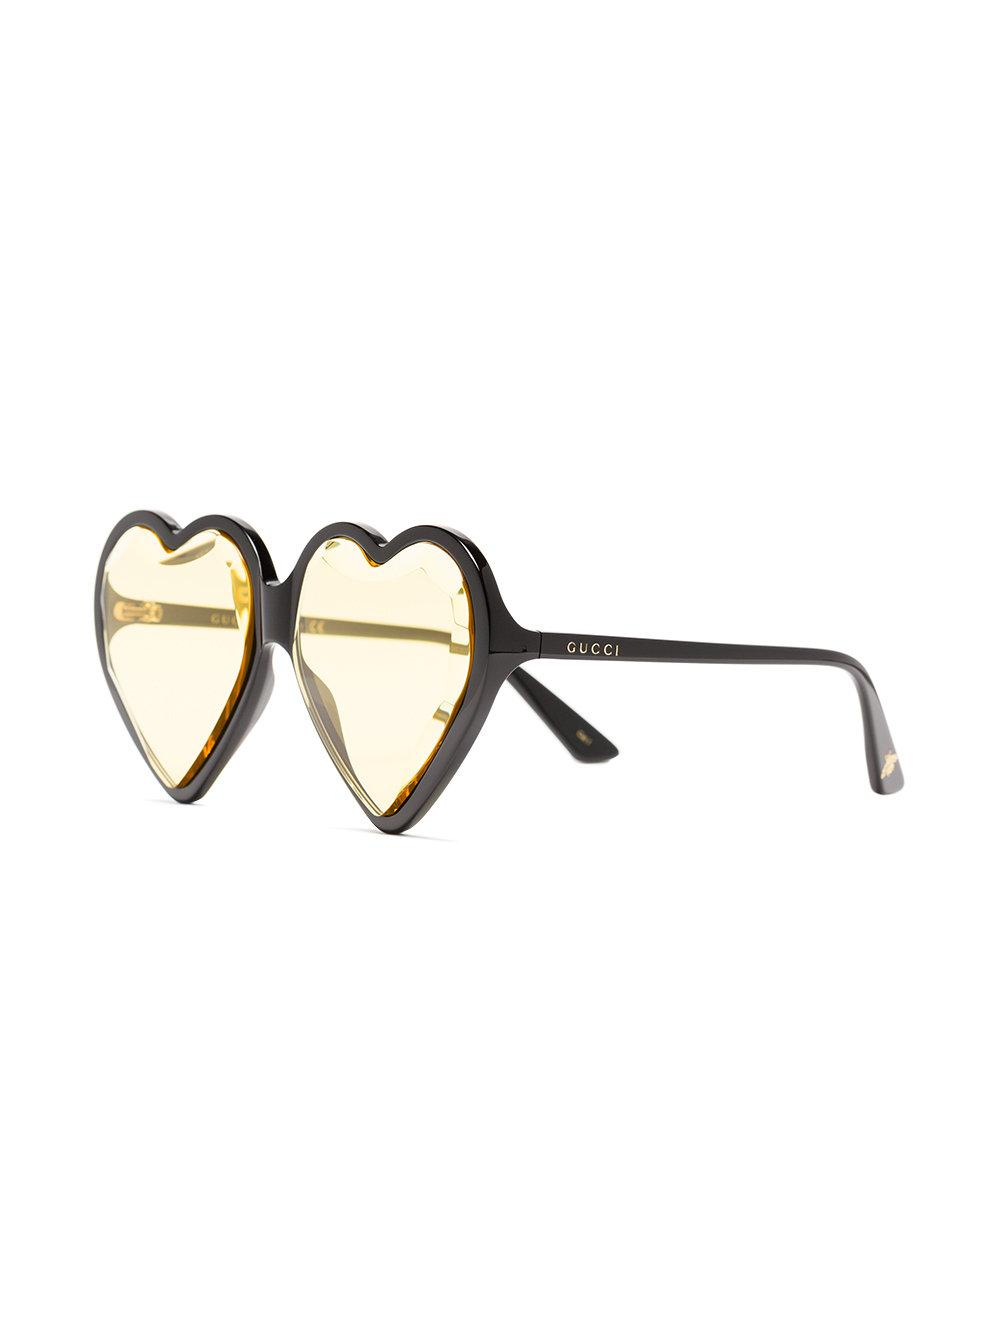 1f158d3923b Gucci Yellow Heart-shaped Sunglasses in Black - Lyst